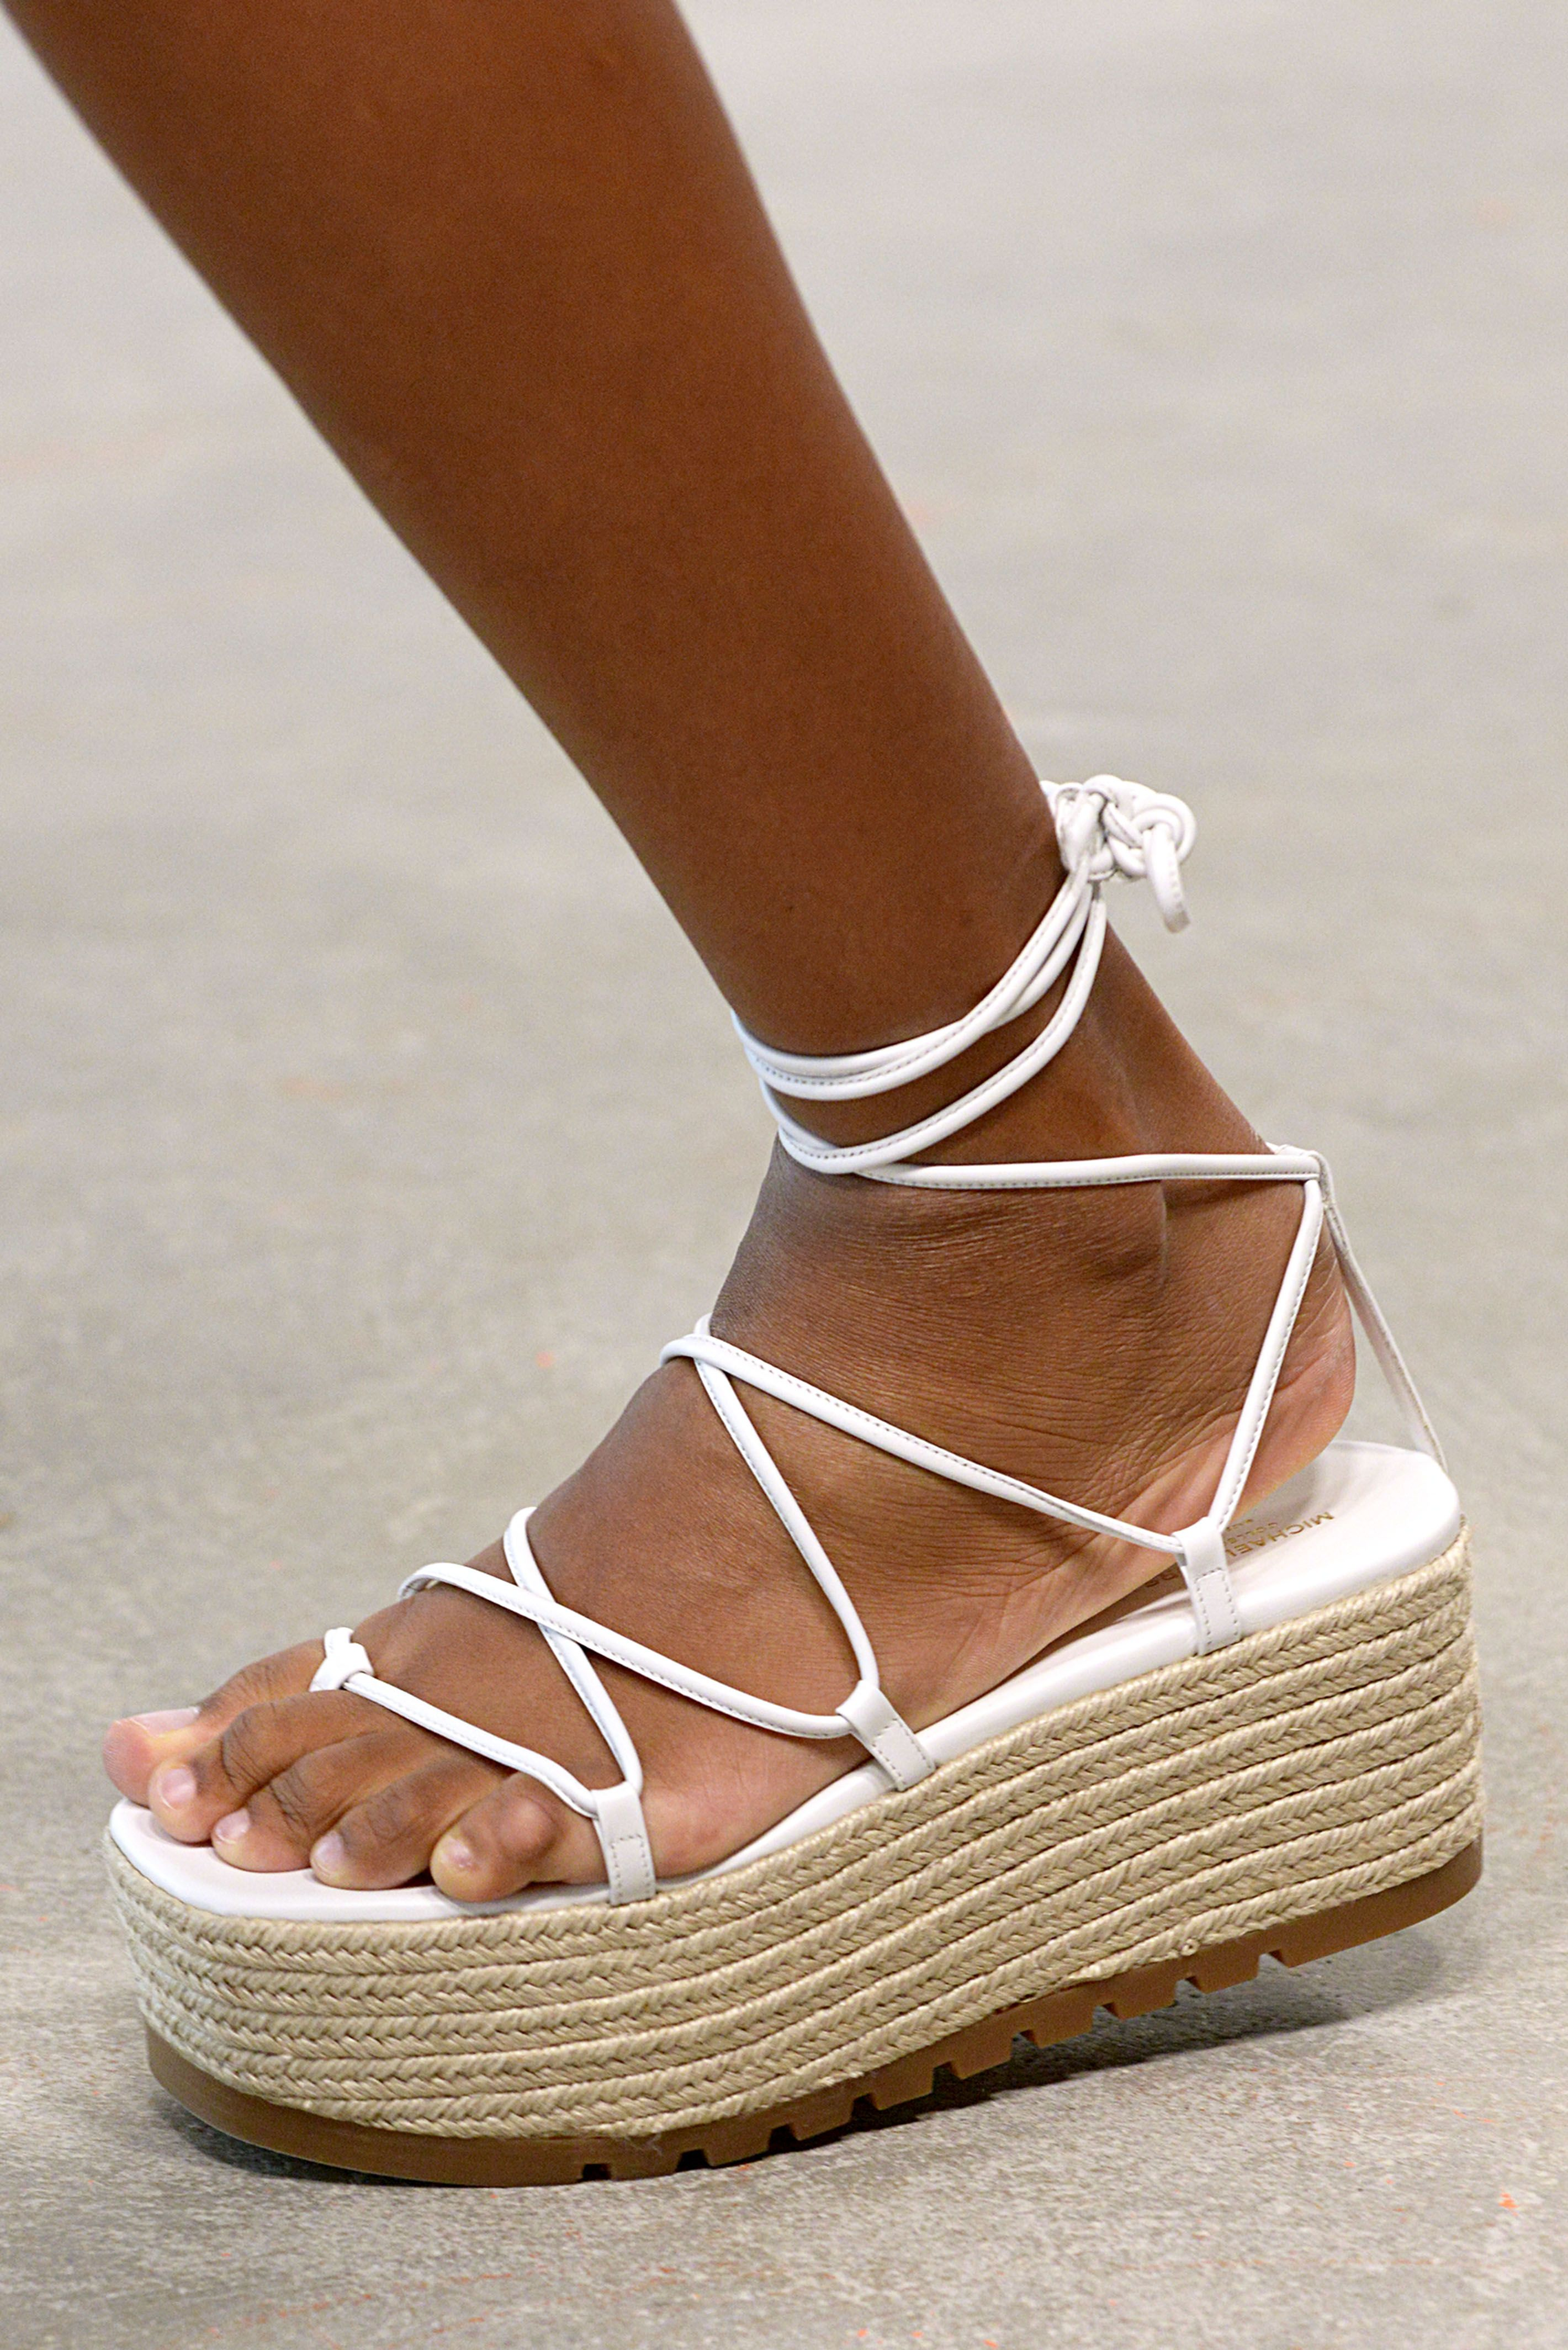 9034cef21f71d Spring summer shoe trends the biggest shoe trends jpg 2840x4256 Newest shoe  trends